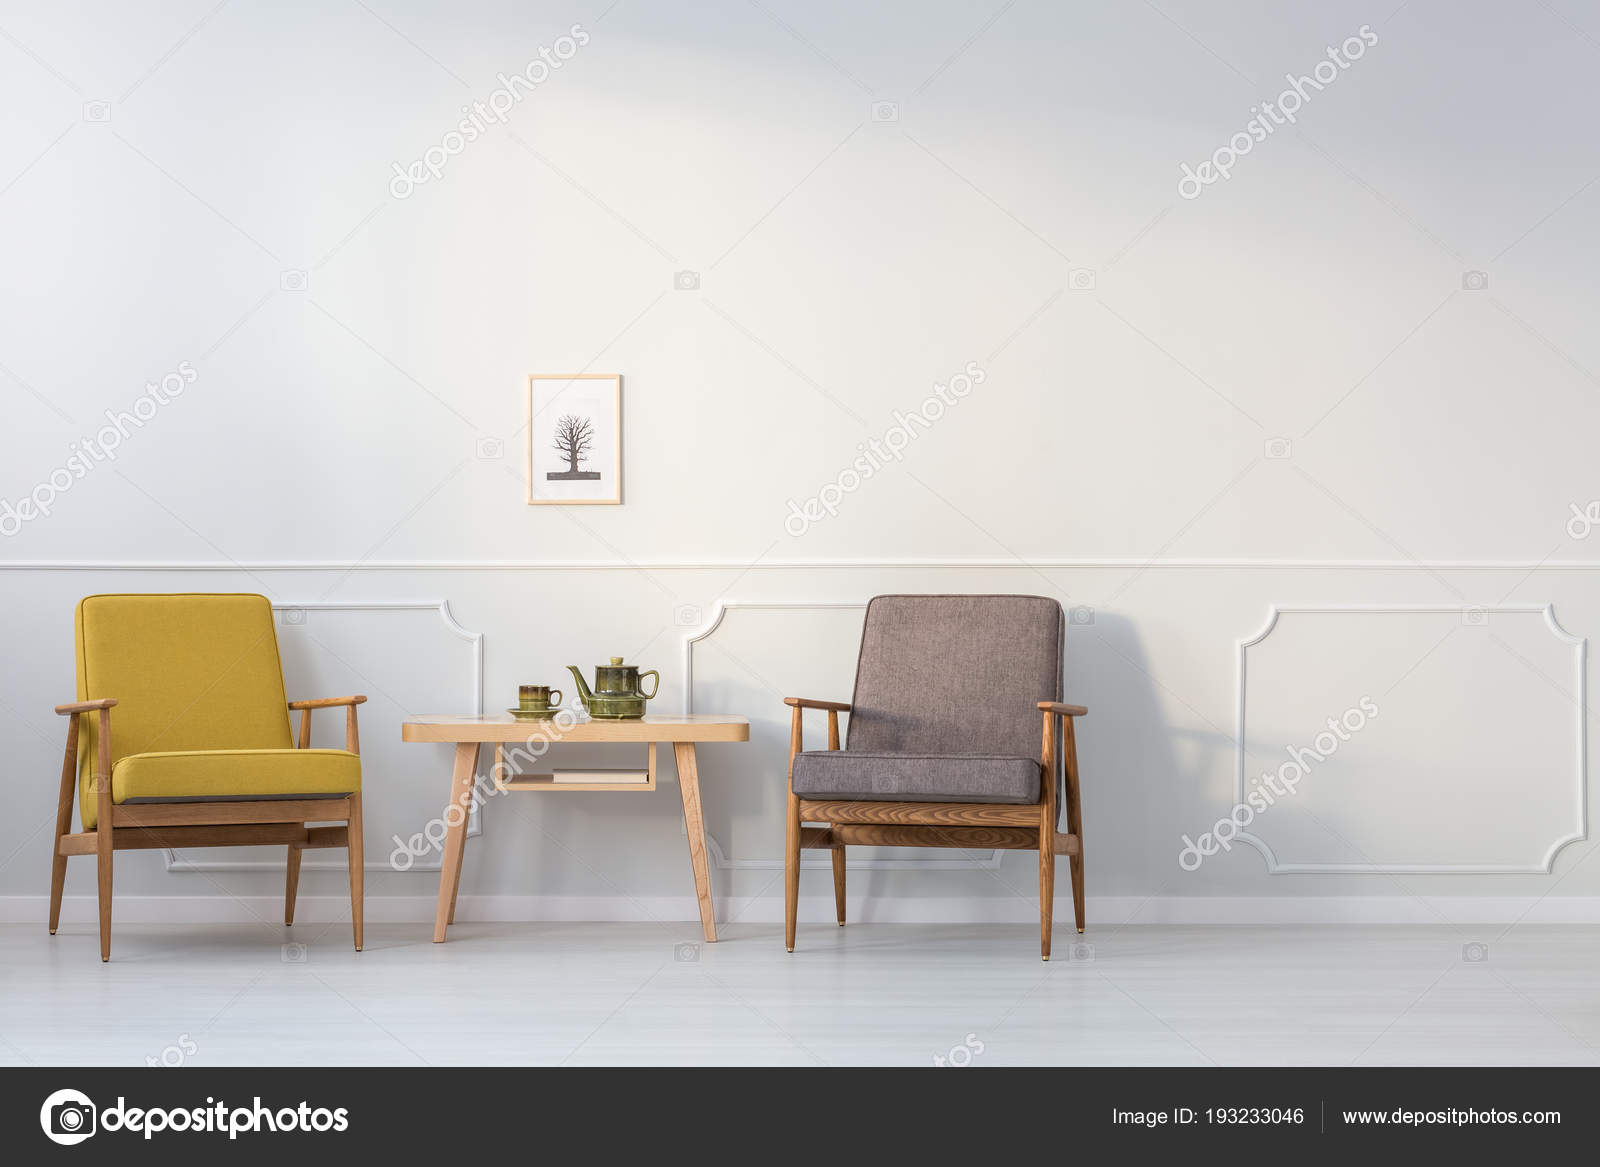 Wooden Table Yellow Grey Armchair White Wall Poster Living Room